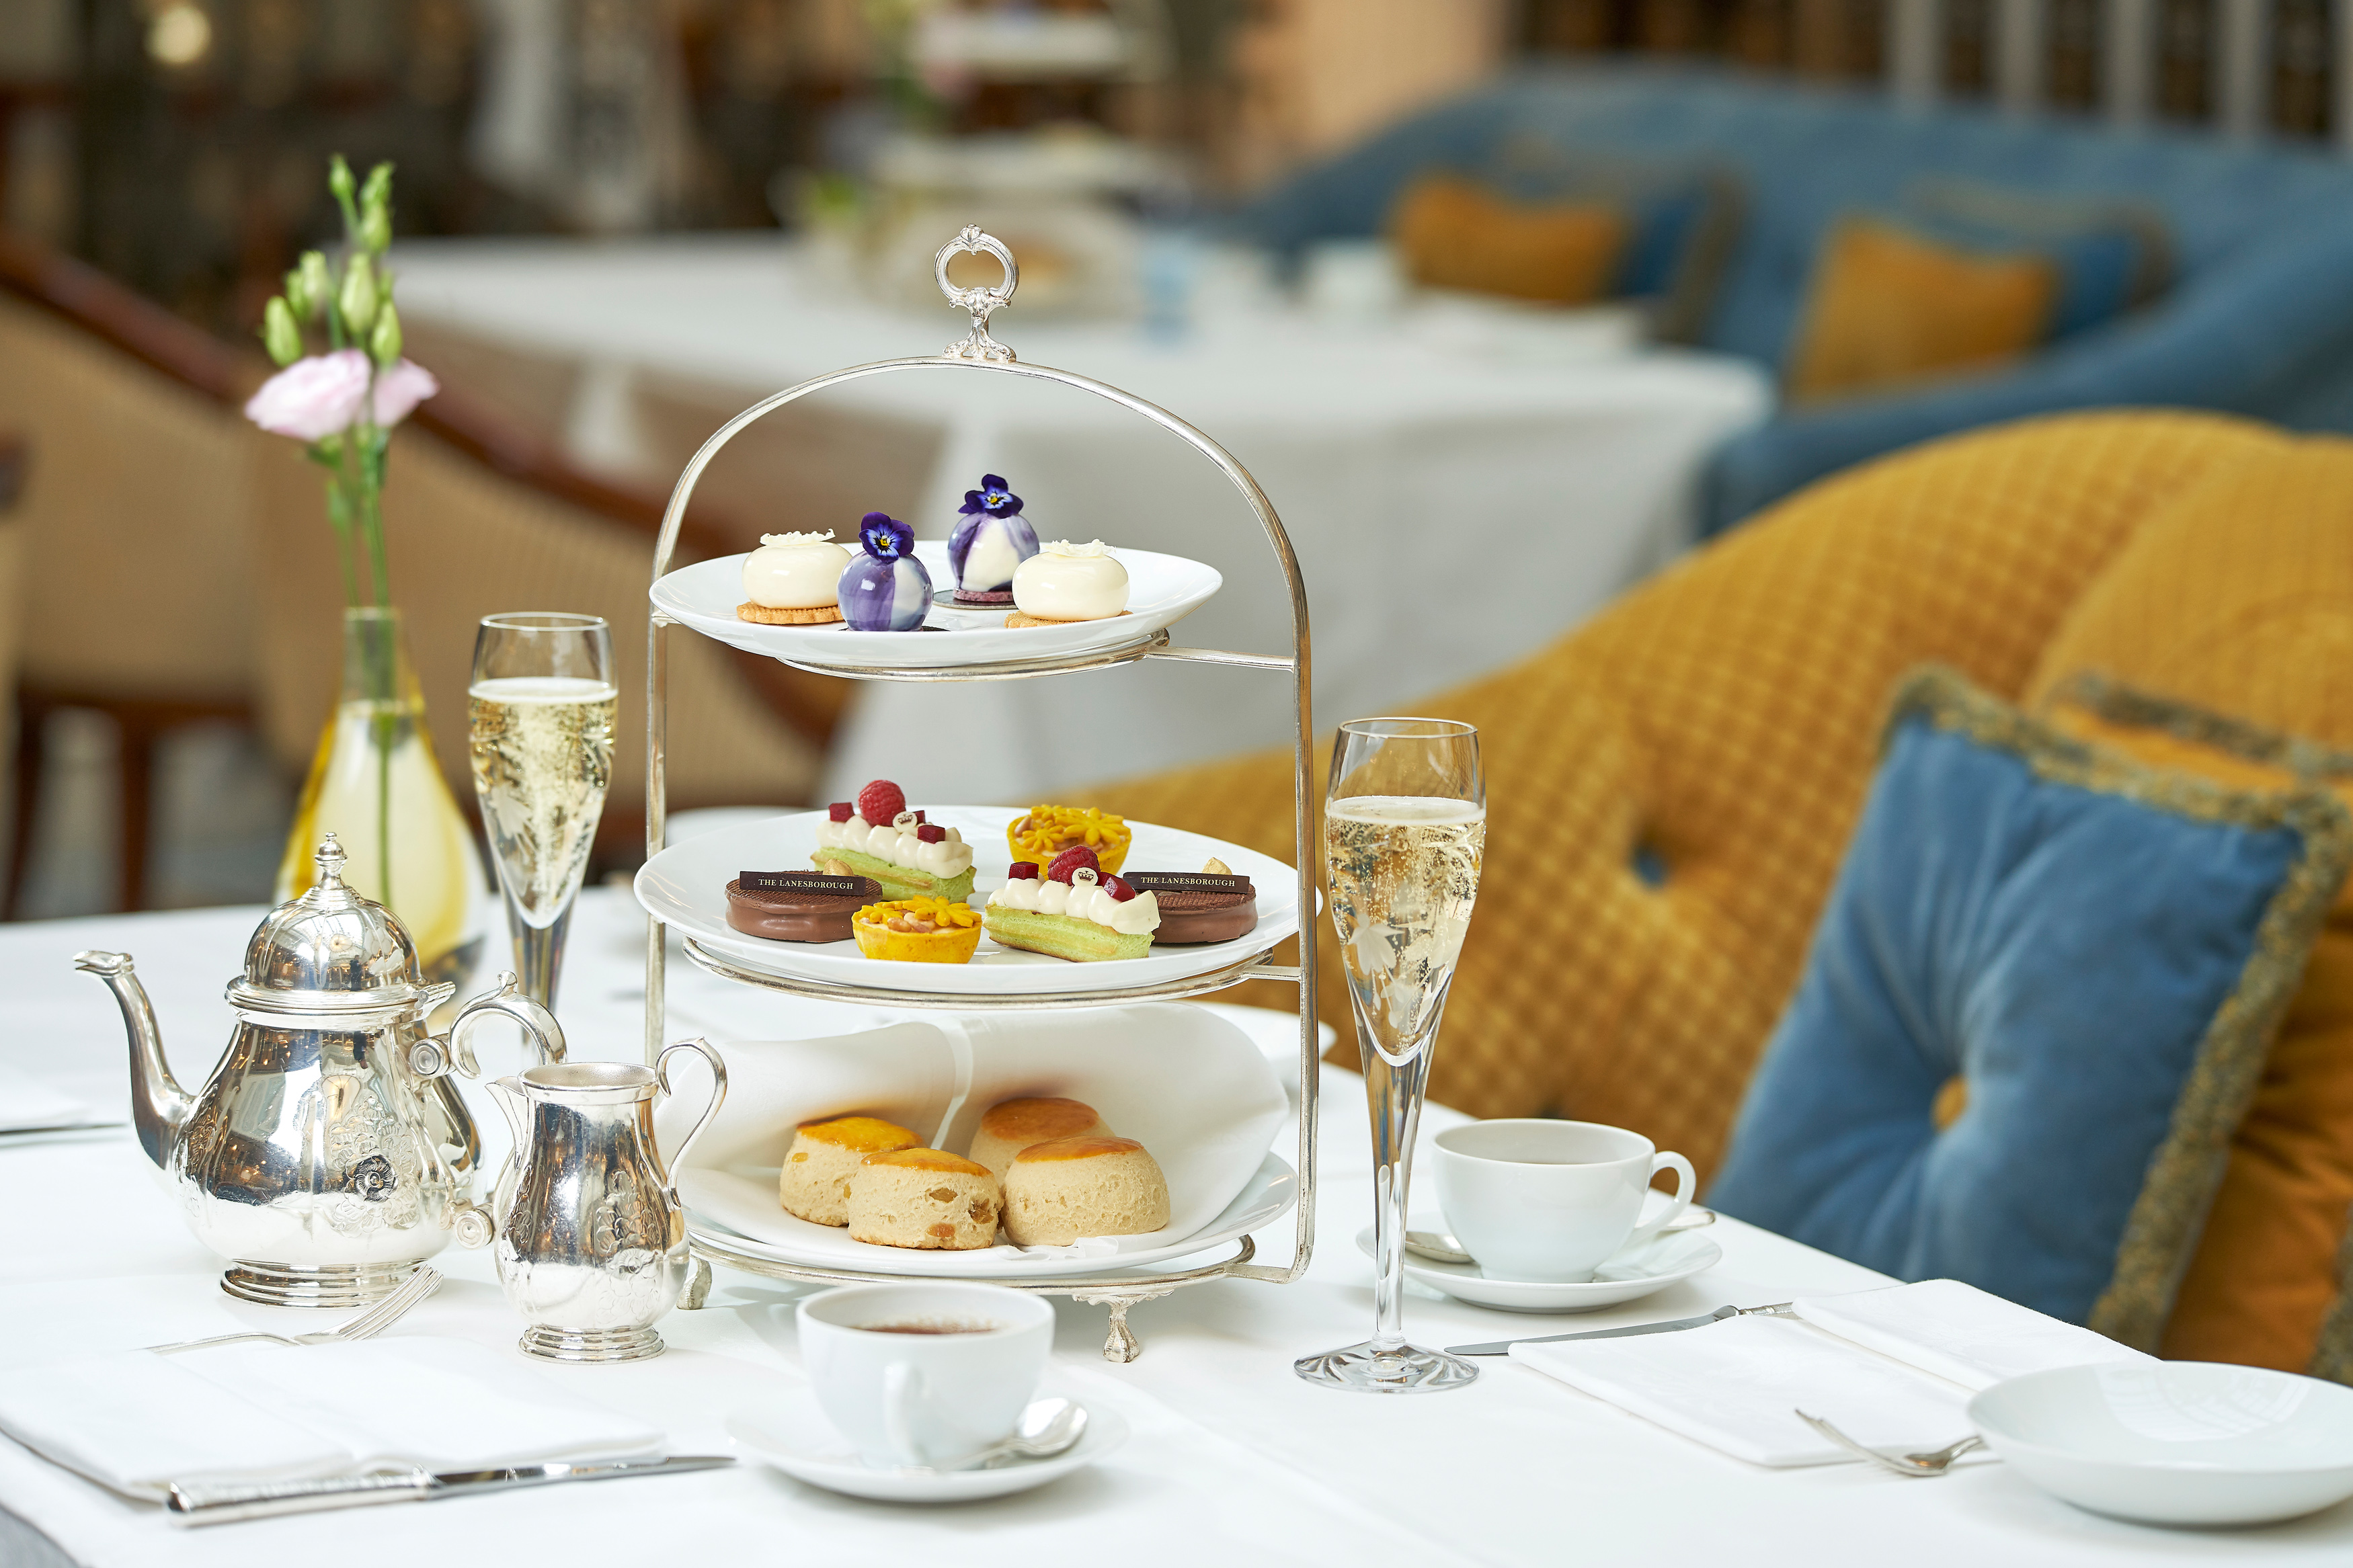 Image of Afternoon Tea at The Lanesborough